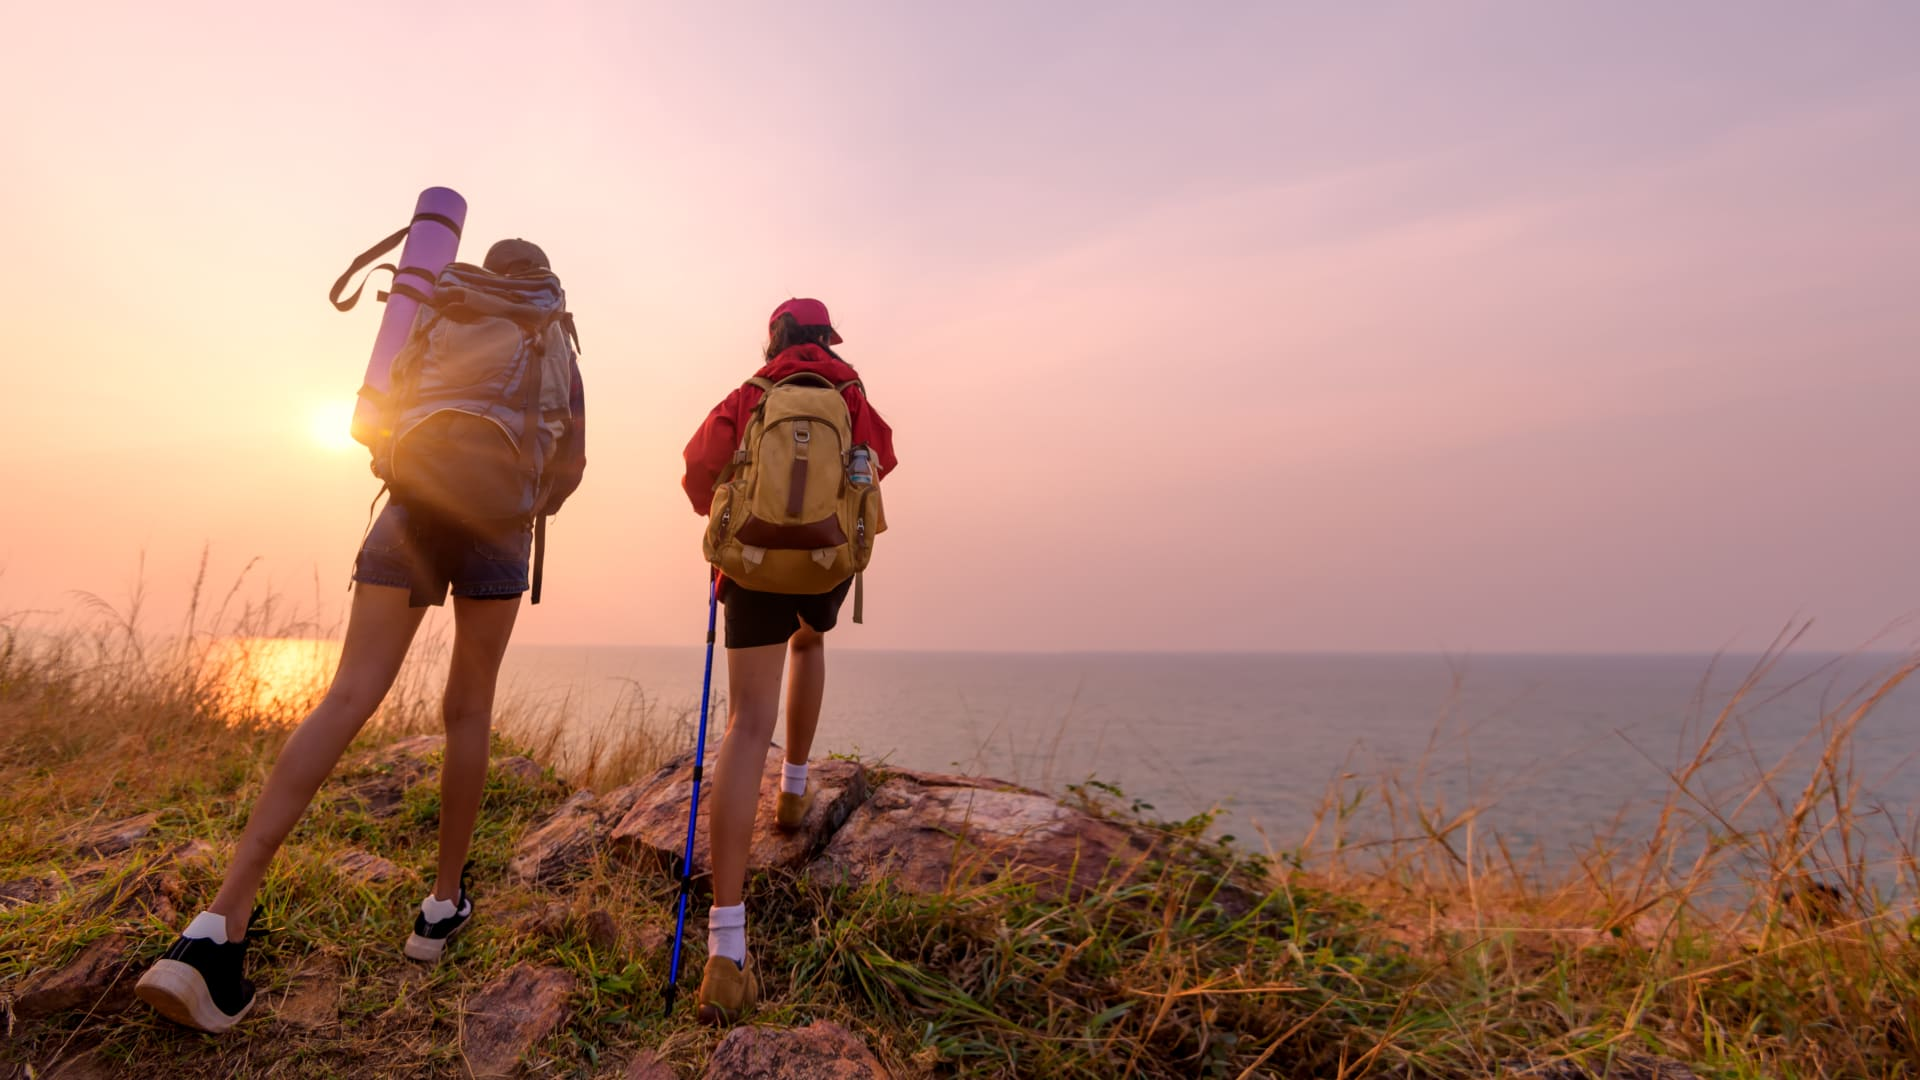 Two women hiking near the seashore whit sunset in the background